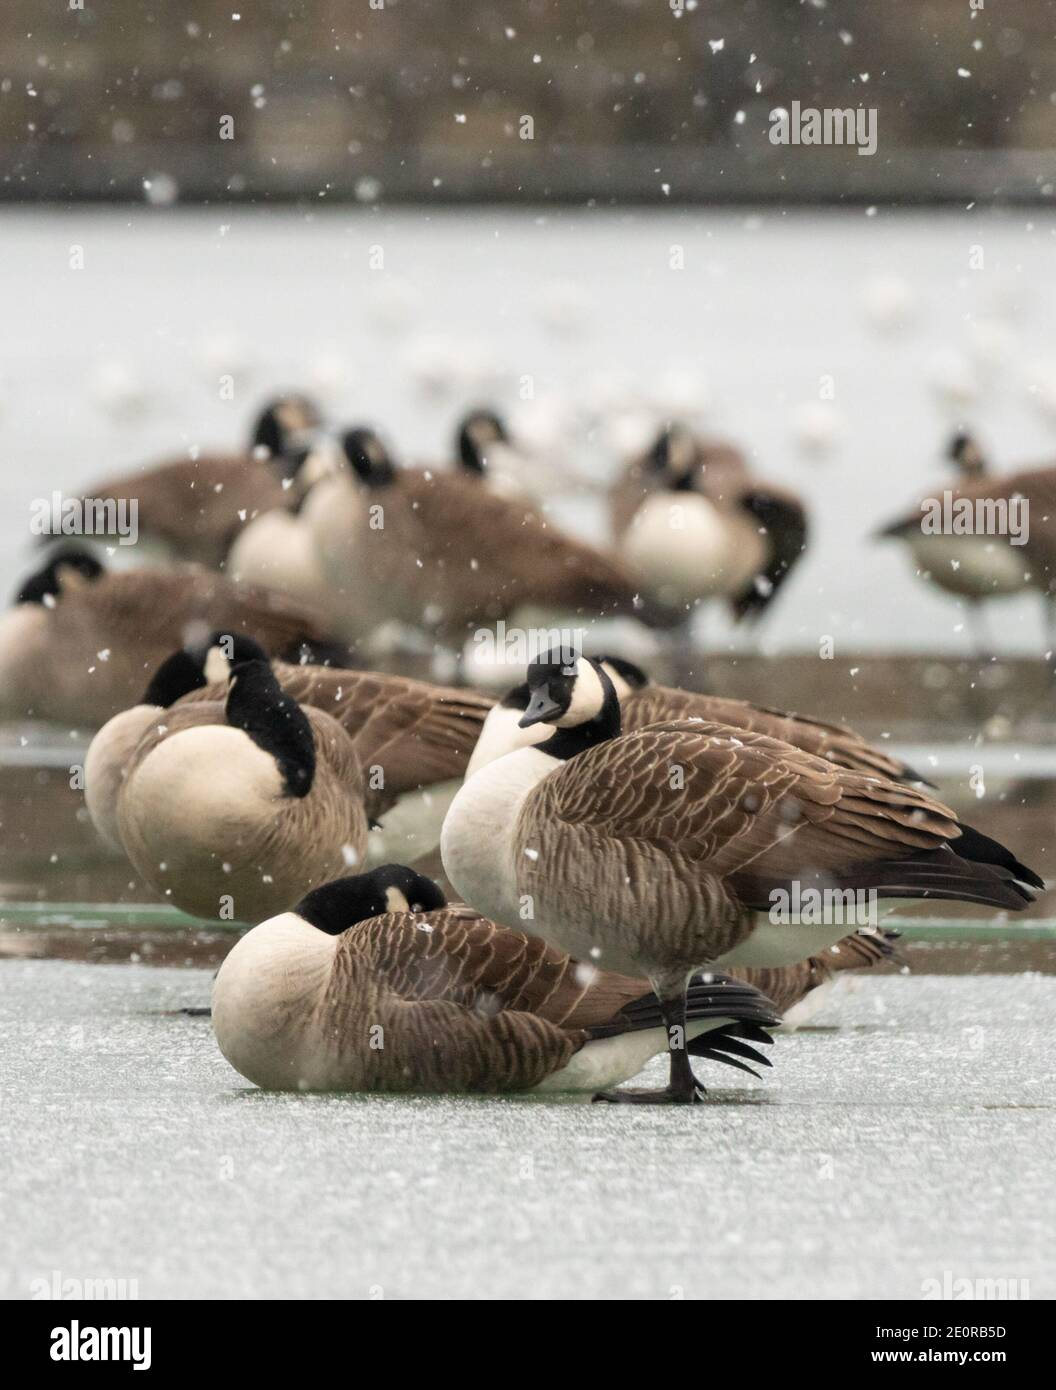 Bolton, England. 2nd Jan 2021. UK Weather. Moses Gate Country Park. A flock of Canada Geese stand on the frozen lake with the one closest to the camera showing curiosity at the falling snow. Credit: Callum Fraser/Alamy Live News Stock Photo